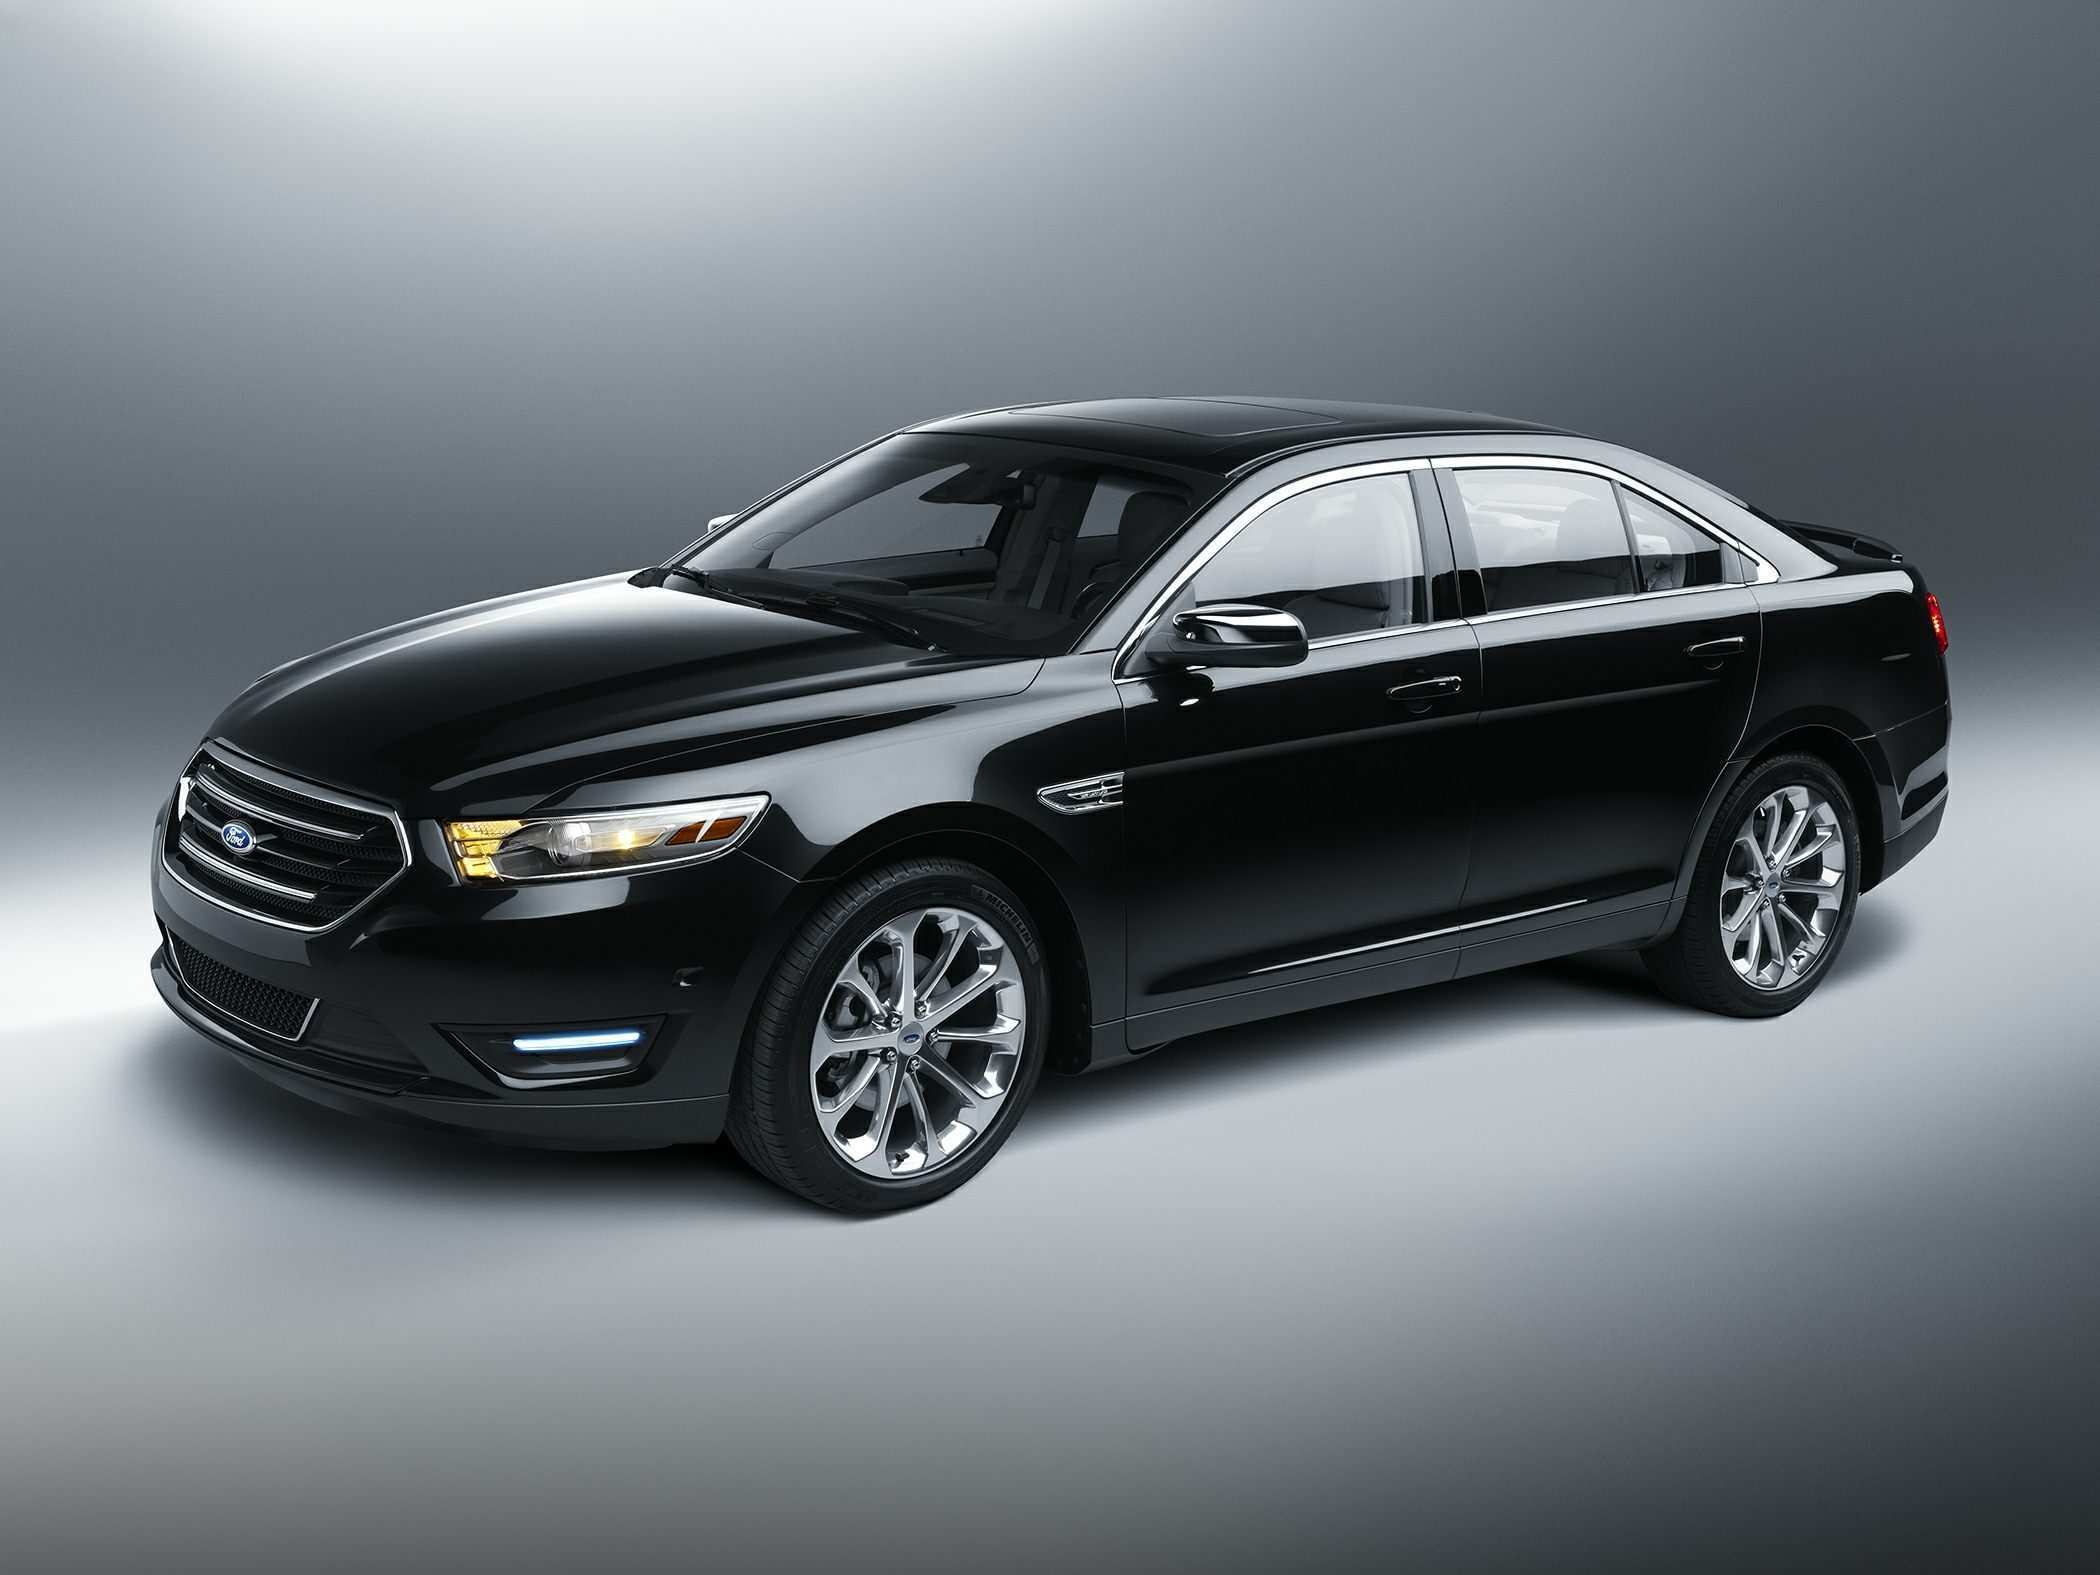 37 Concept of 2020 Ford Taurus Sho Price with 2020 Ford Taurus Sho